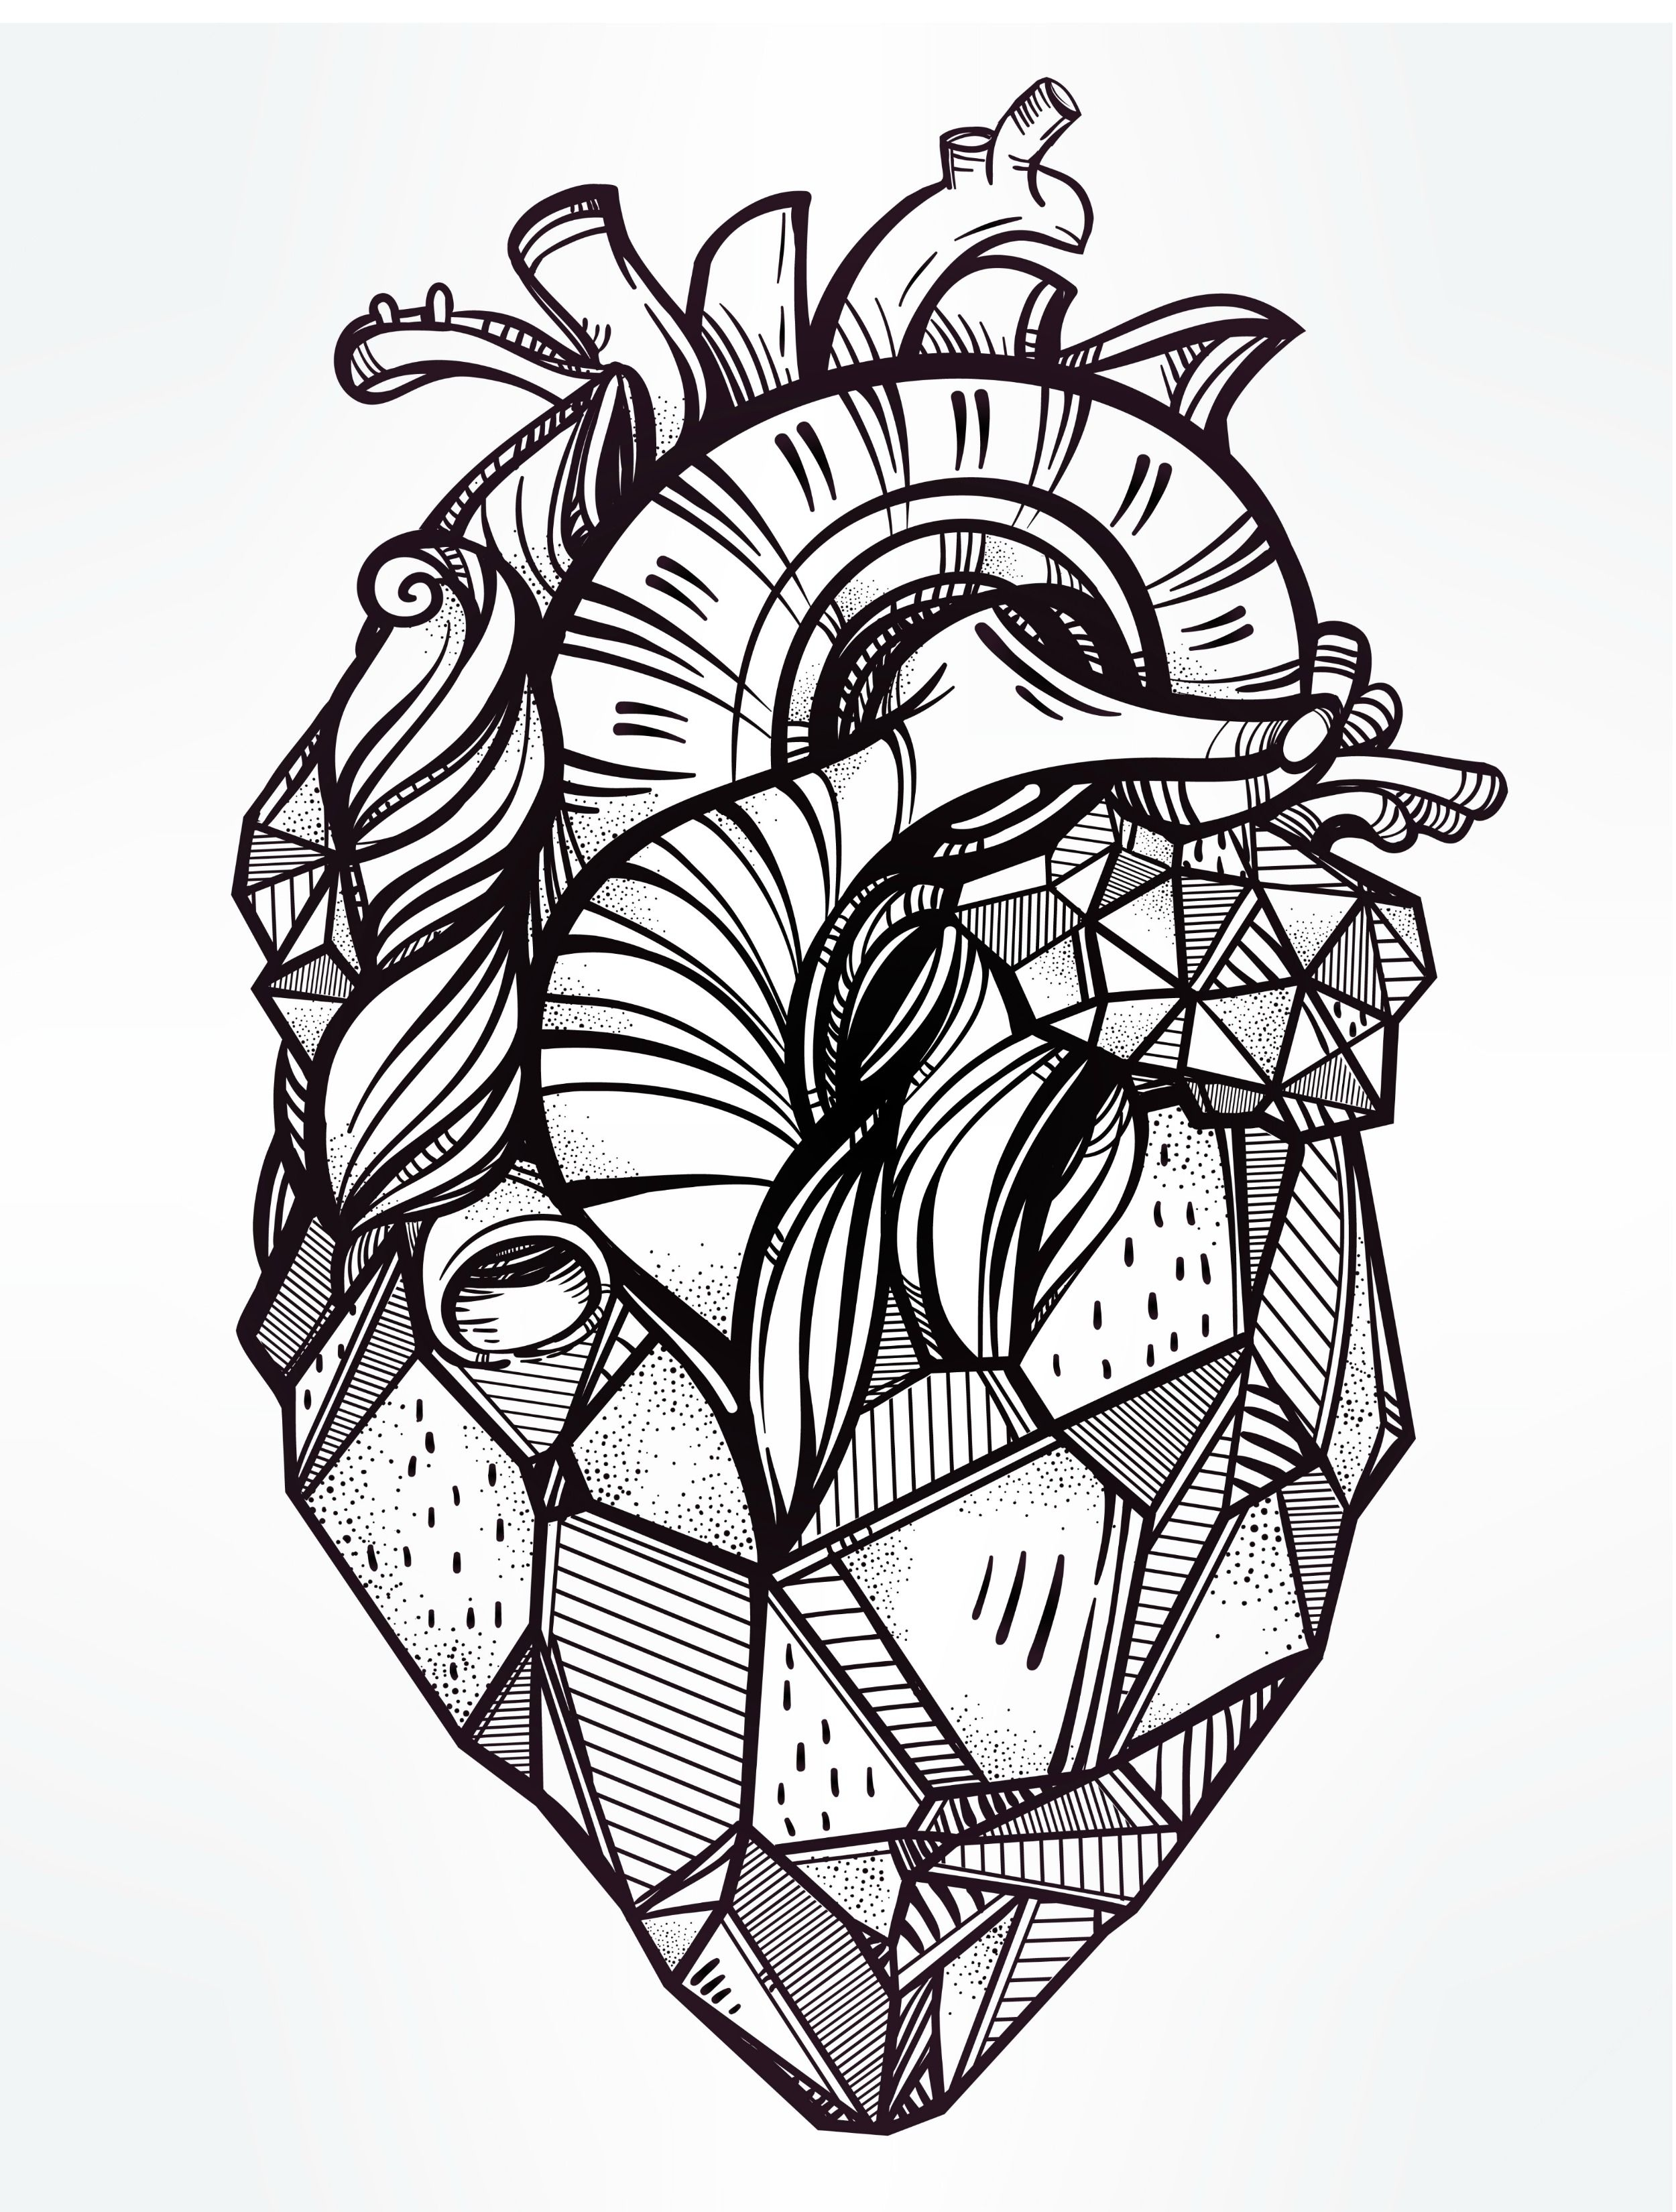 Insperation Geometric Heart Tattoo Heart Coloring Pages Tattoo Templates